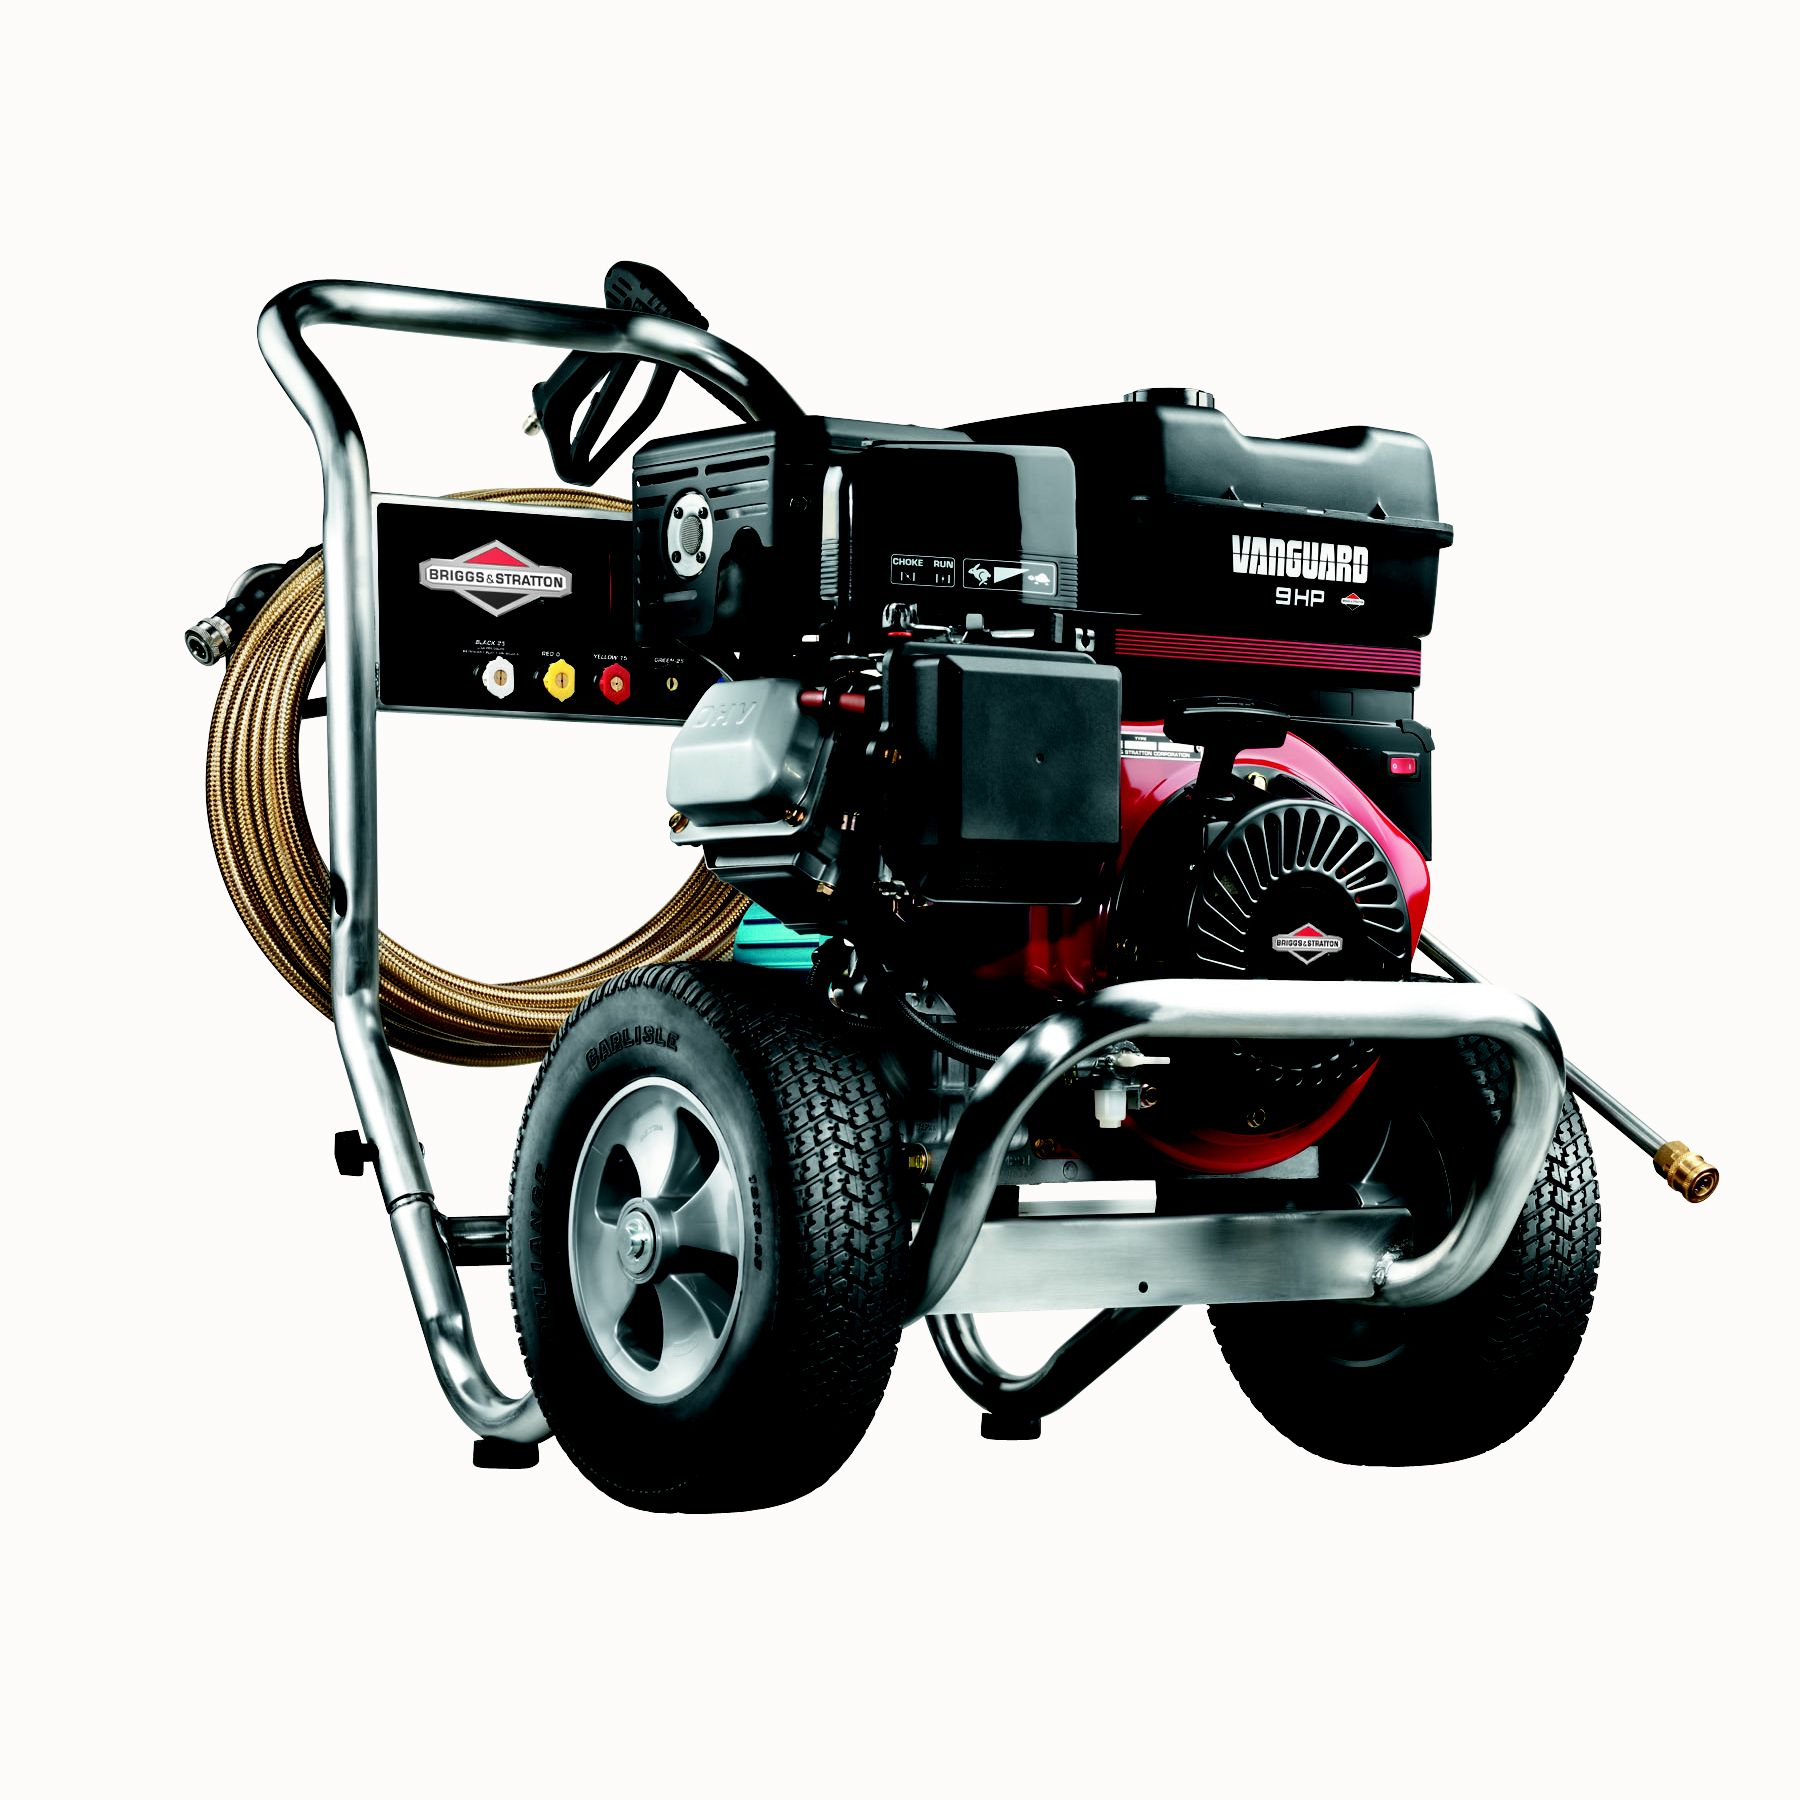 3700 PSI , 4.2 GPM Gas Pressure Washer